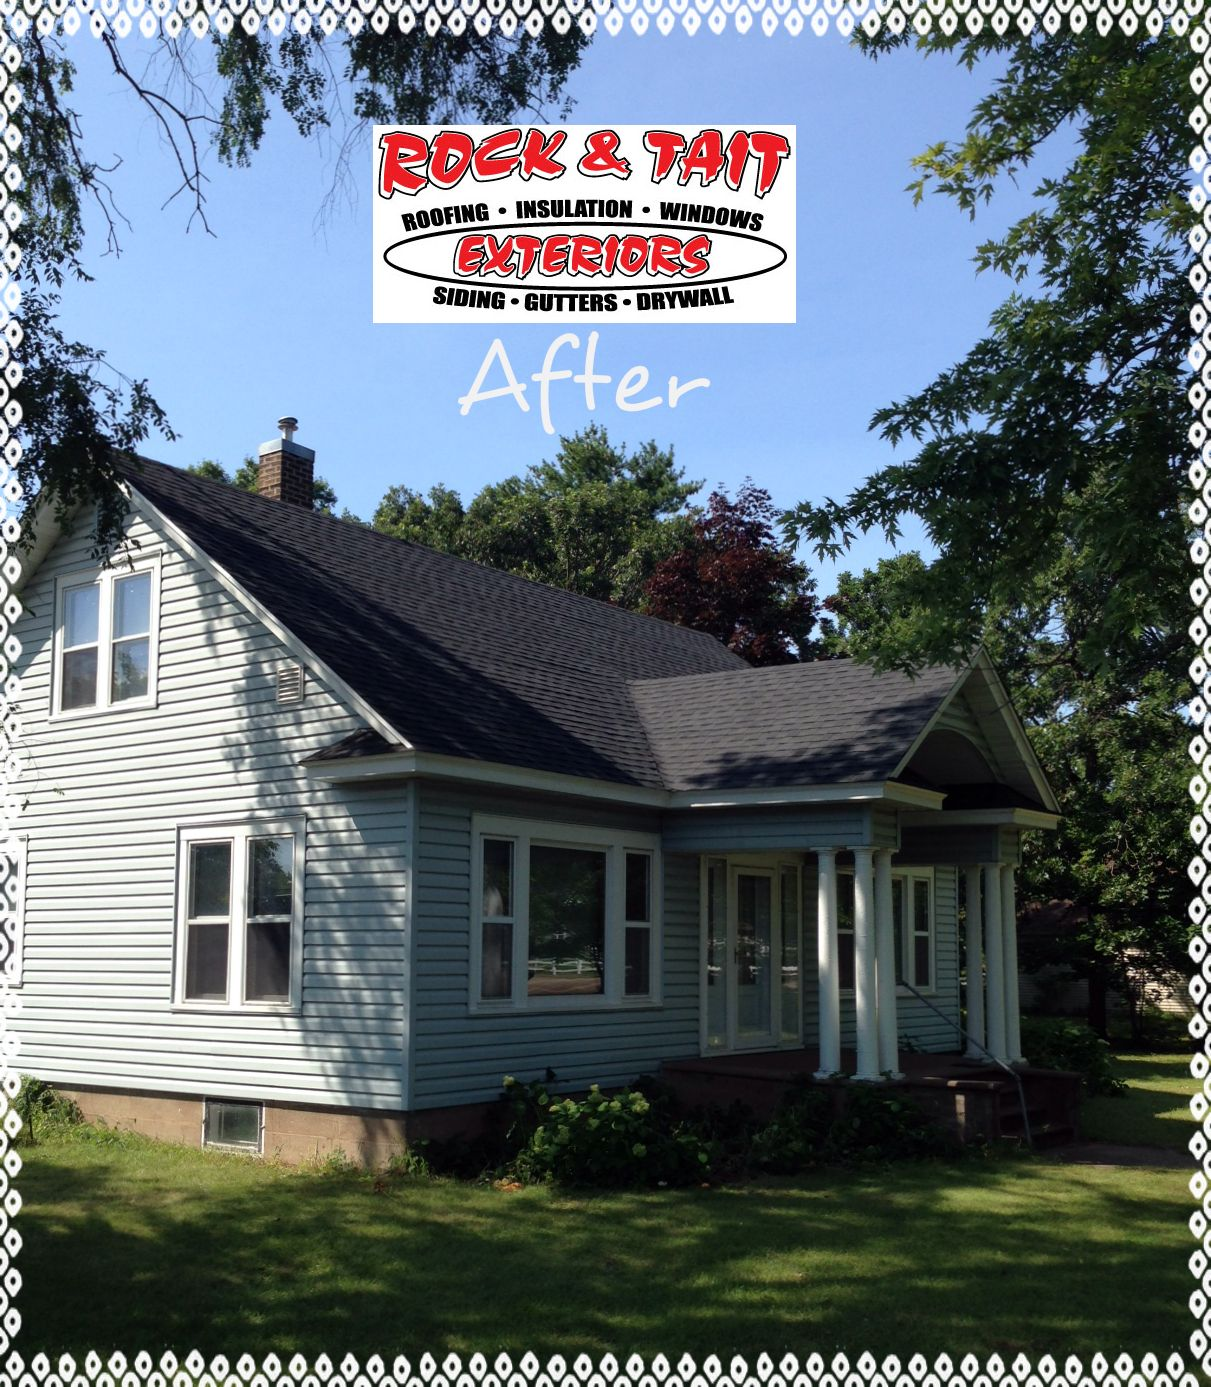 After With Gaf Roofing Materials With Images Roof Architecture Fibreglass Roof Modern Roofing